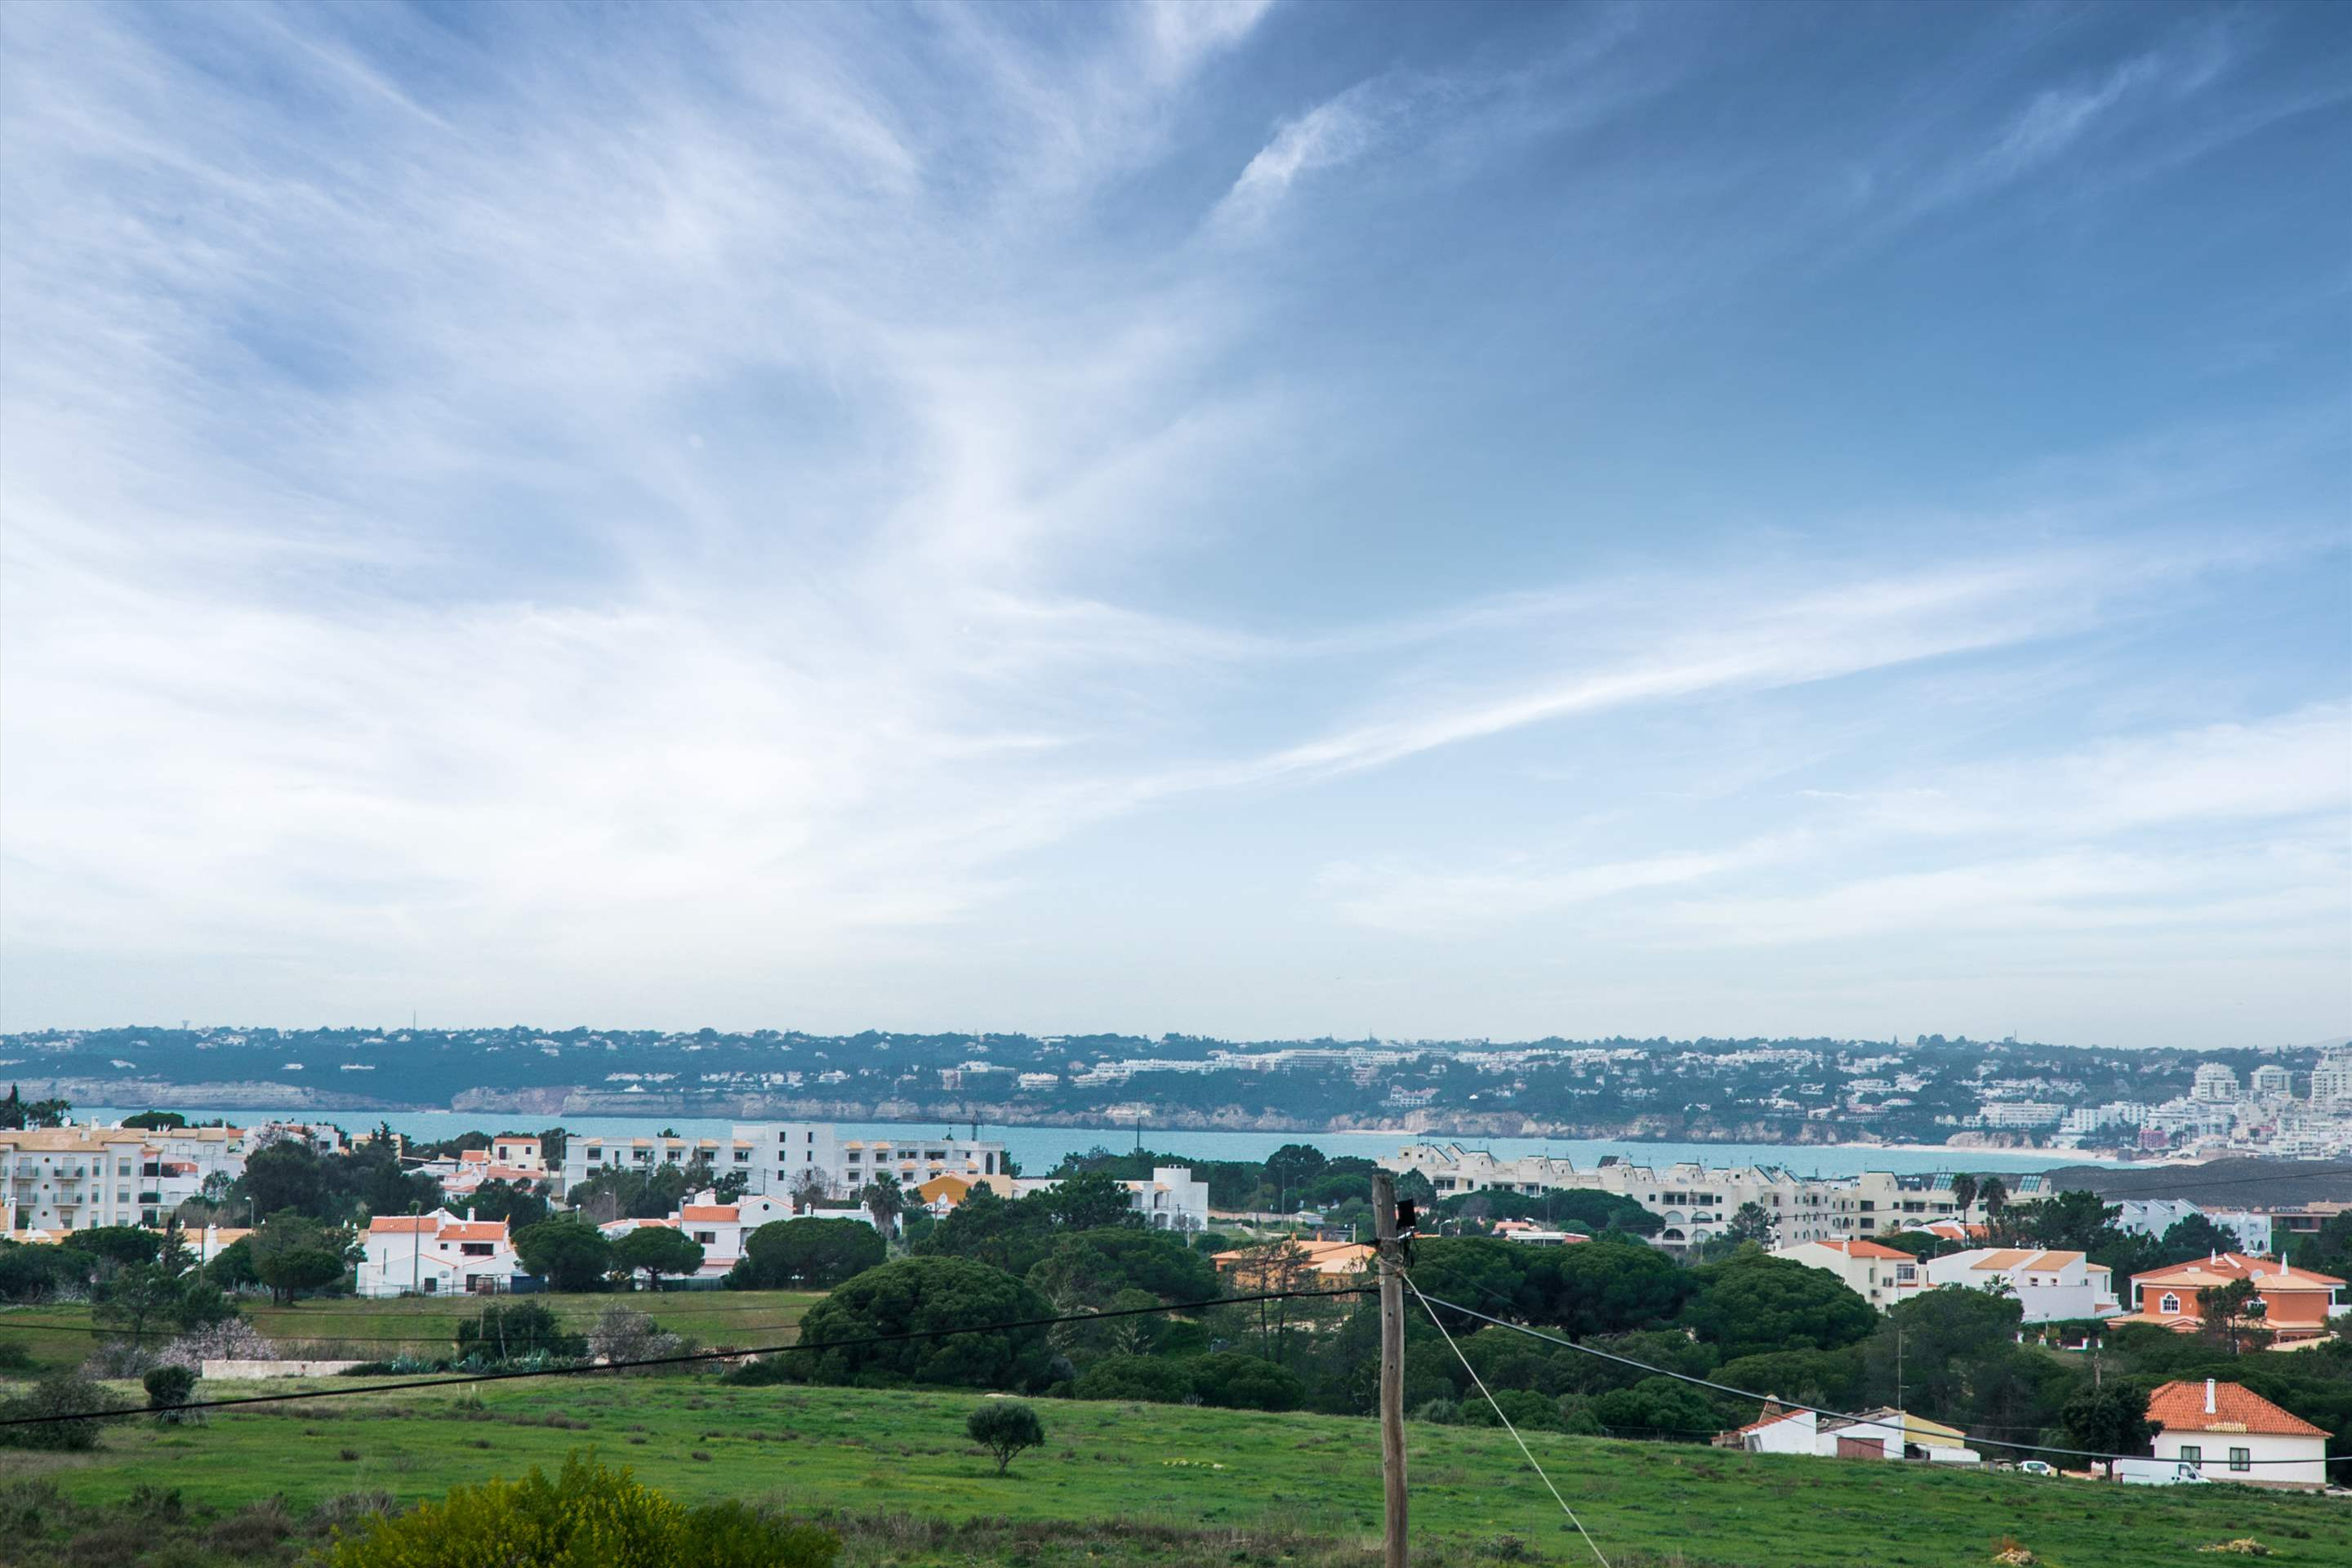 Casa Isabel, 5-6 persons rate, 3 bedroom villa in Gale, Vale da Parra and Guia, Algarve Photo #24